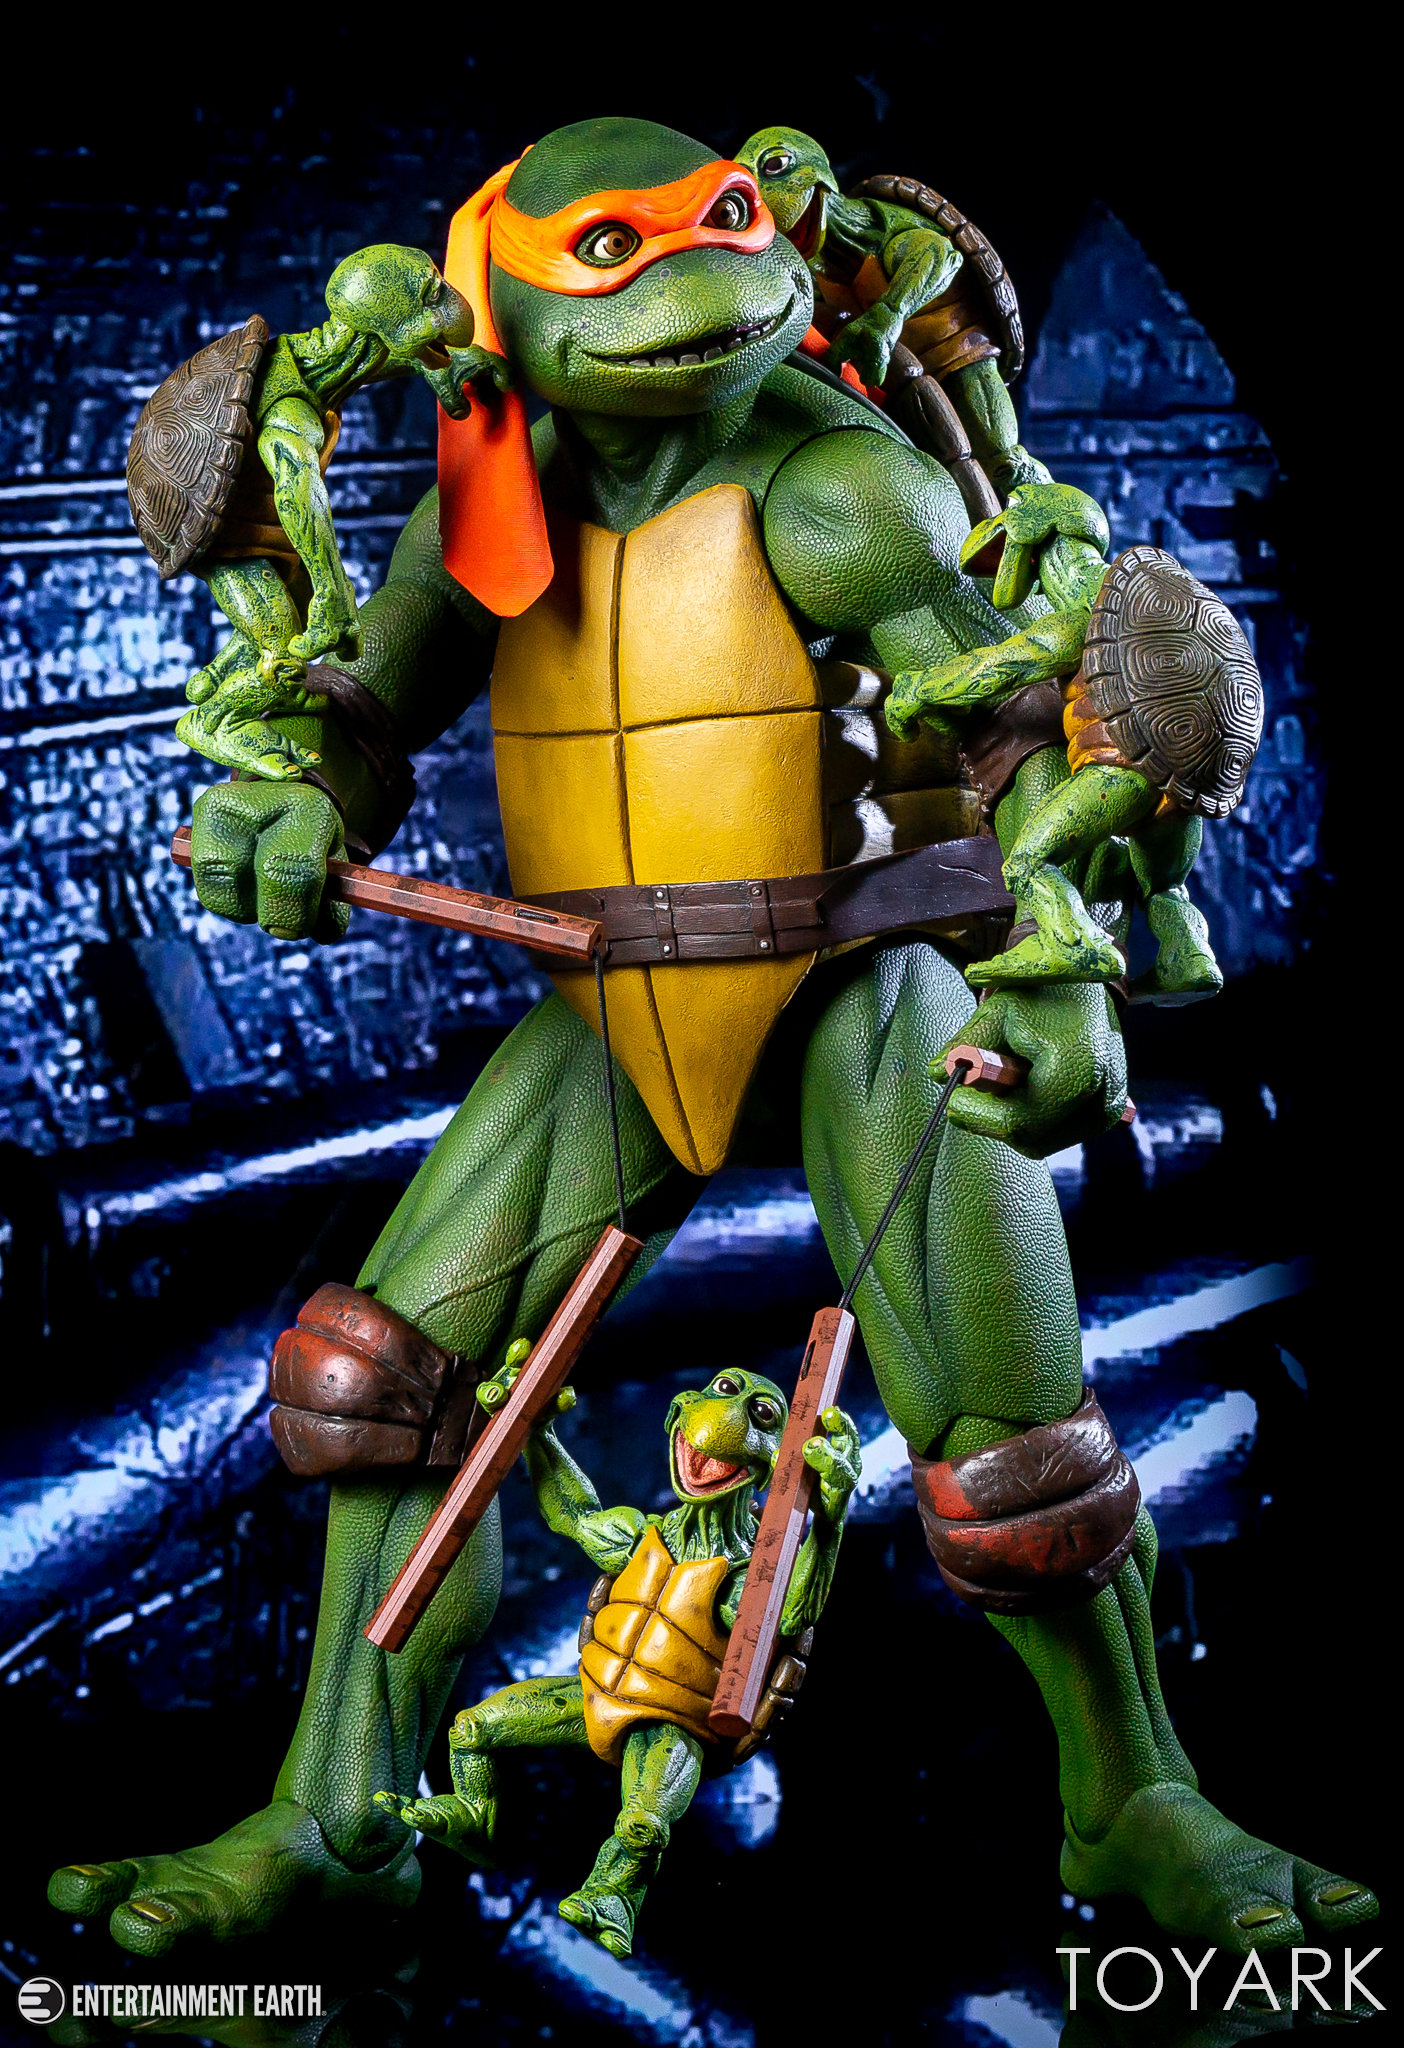 https://news.toyark.com/wp-content/uploads/sites/4/2018/06/NECA-Baby-Turtles-1990-TMNT-044.jpg